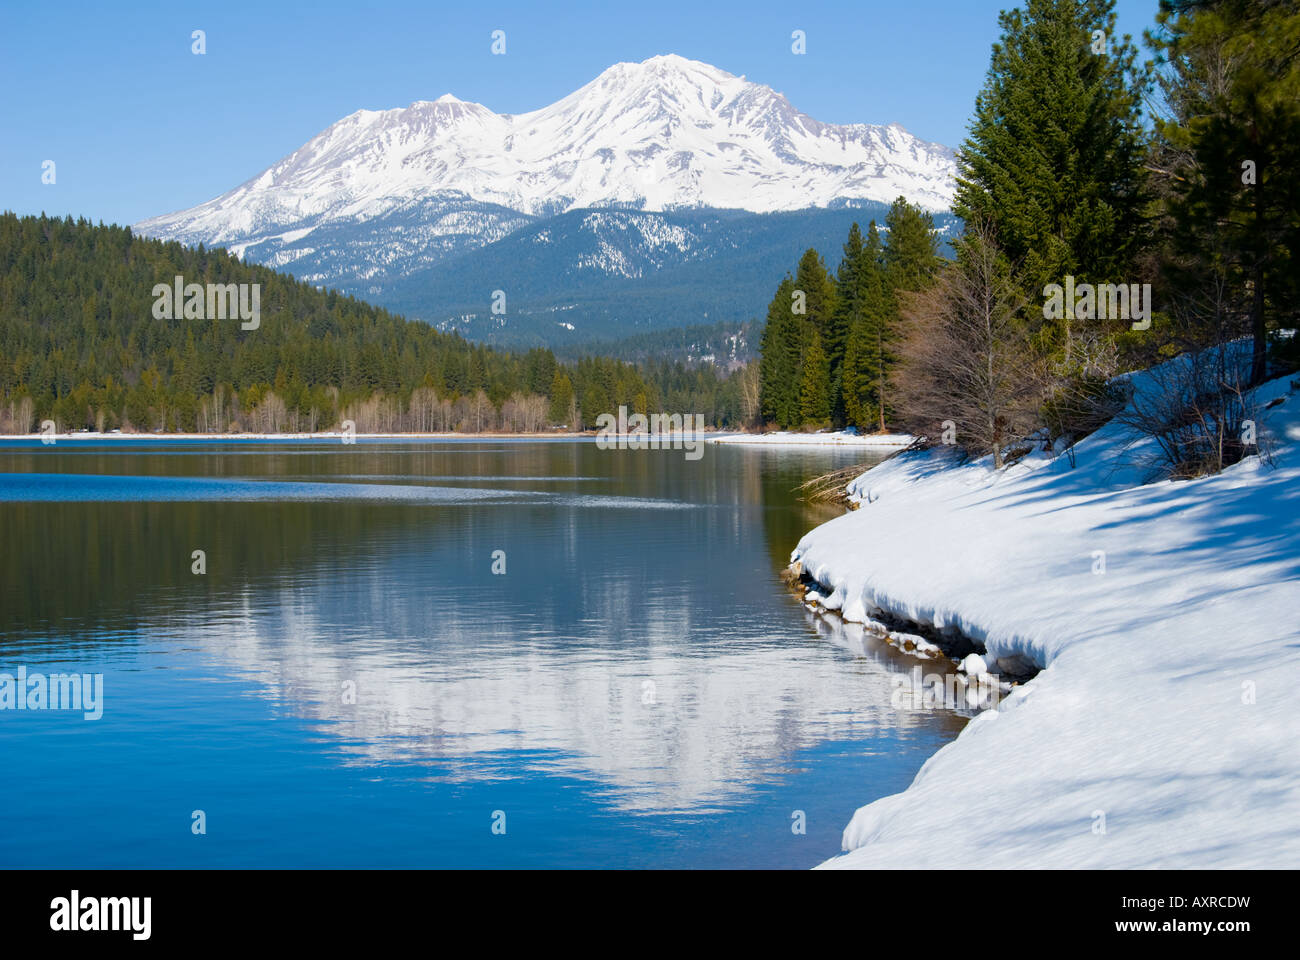 Snowy mountain in Northern California - Stock Image